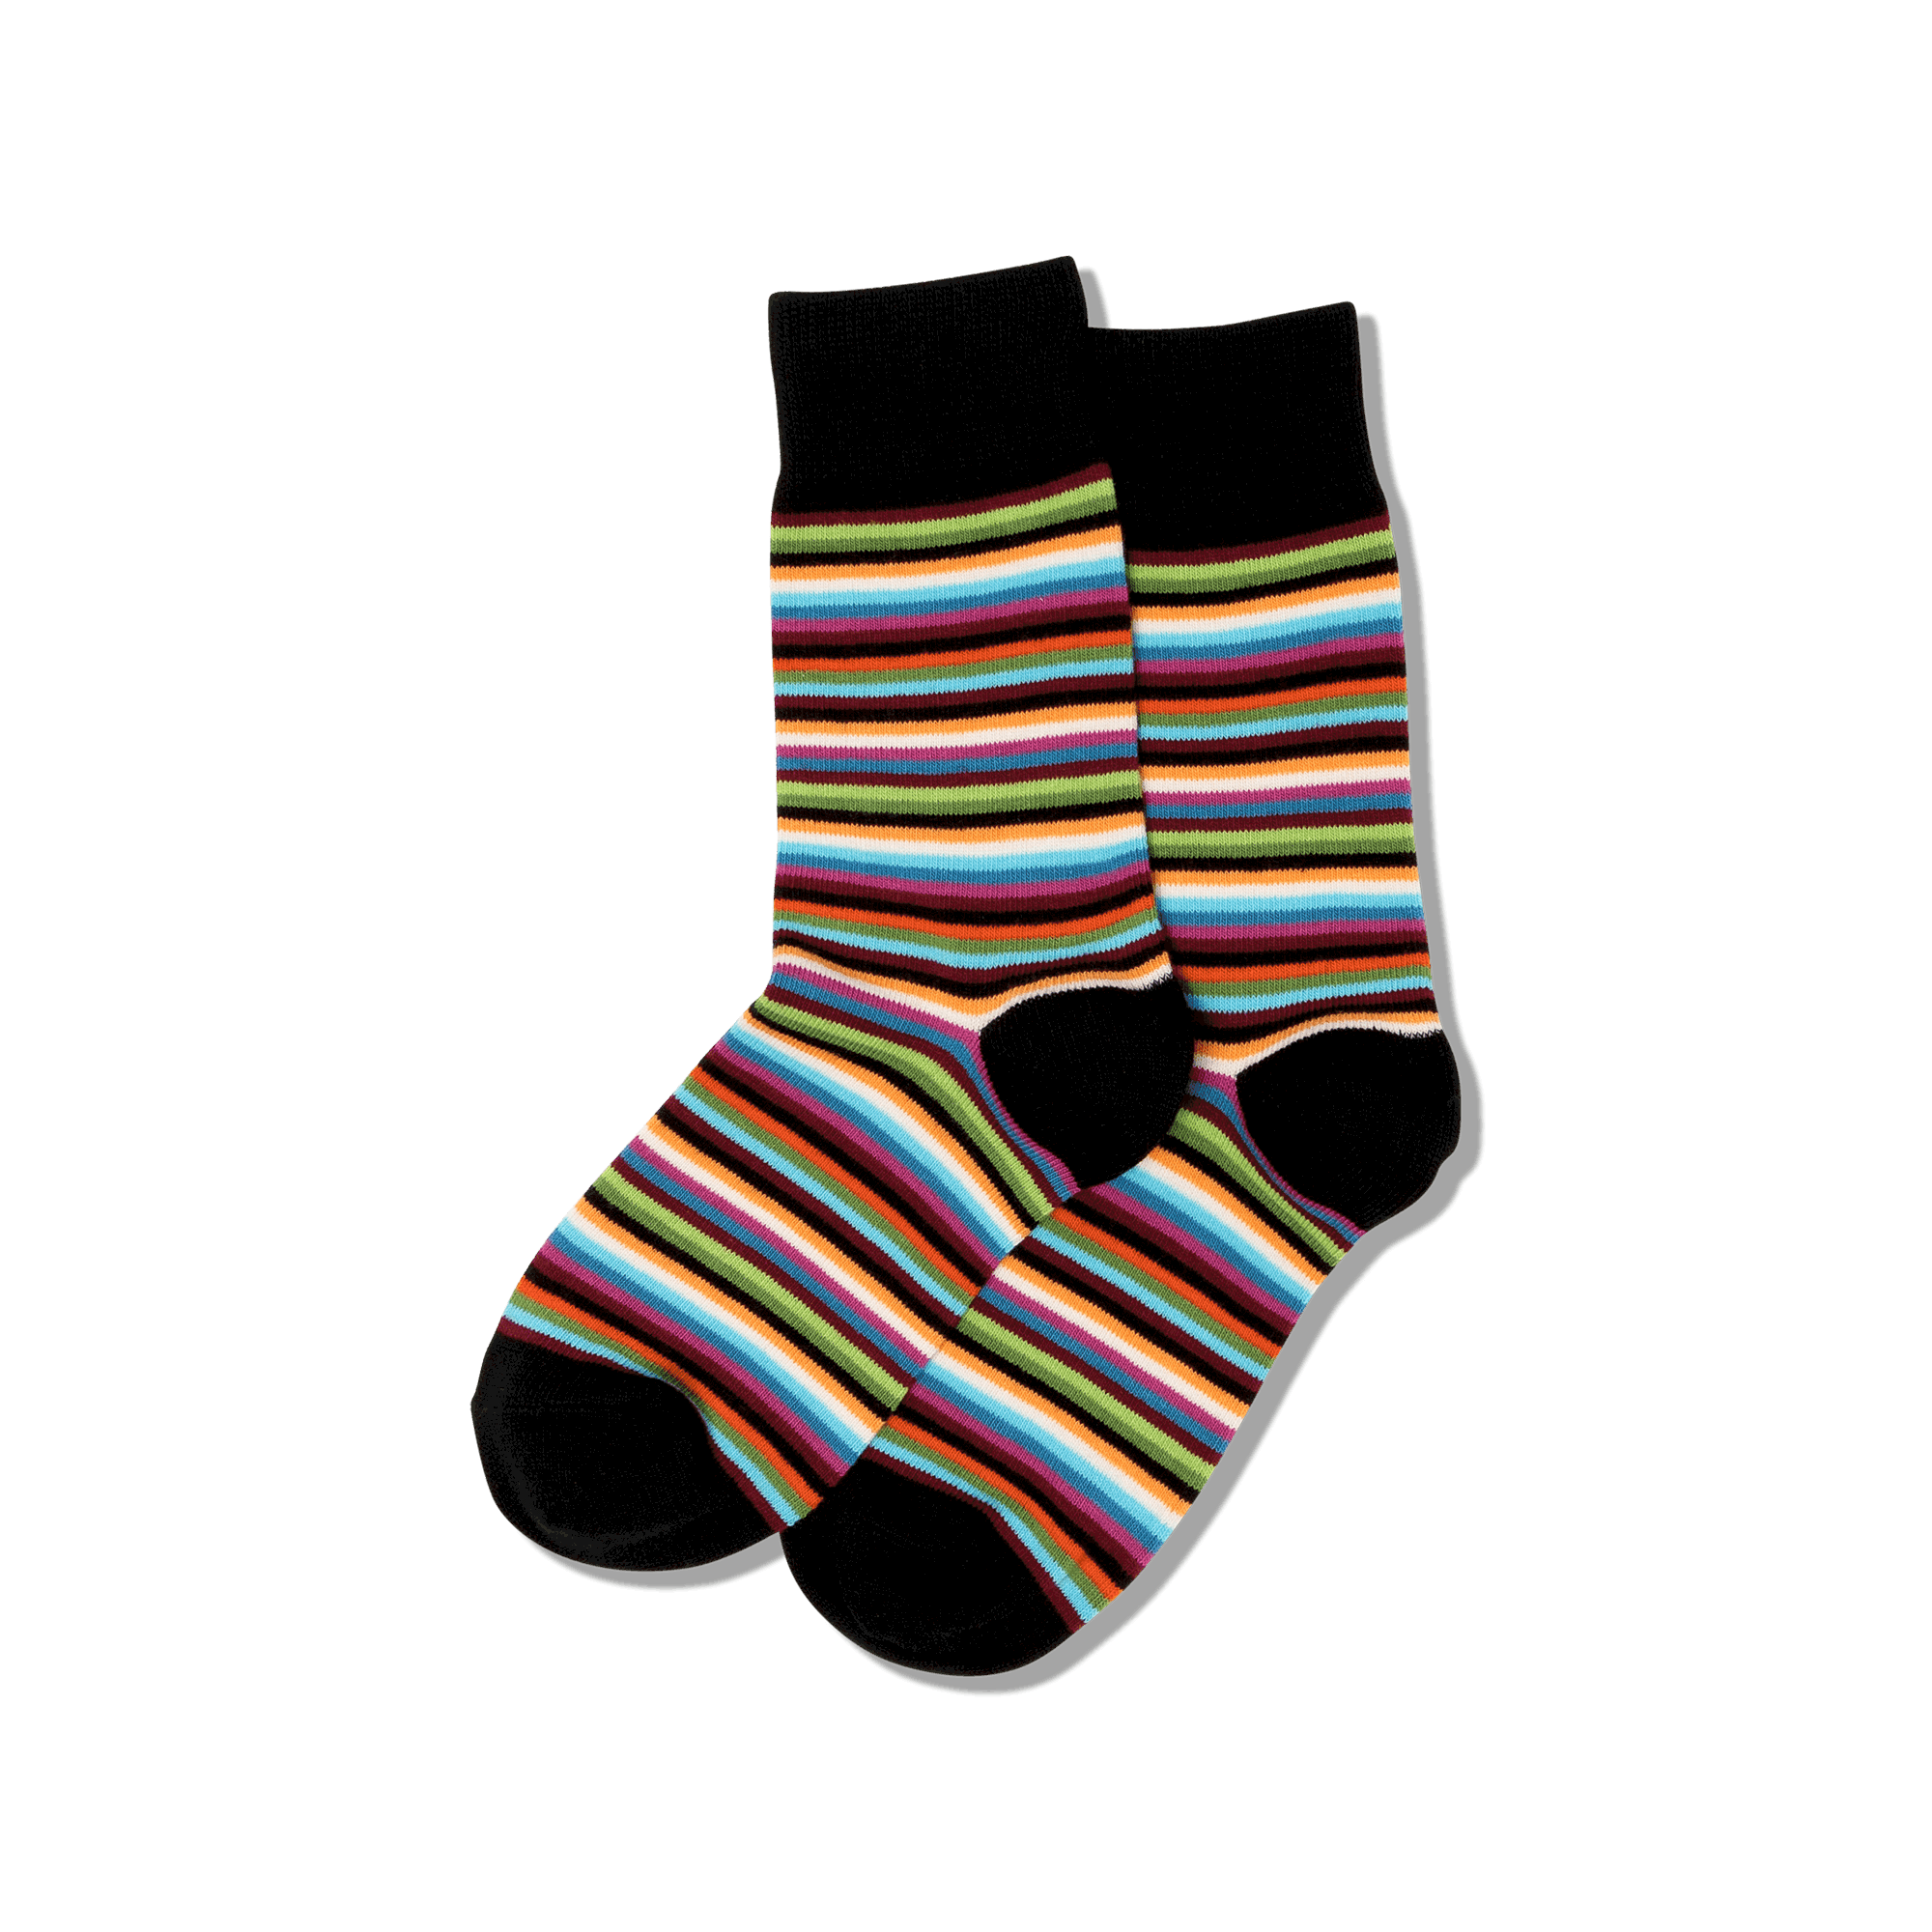 HotSox Socks Classic Stripe-Black-Tan